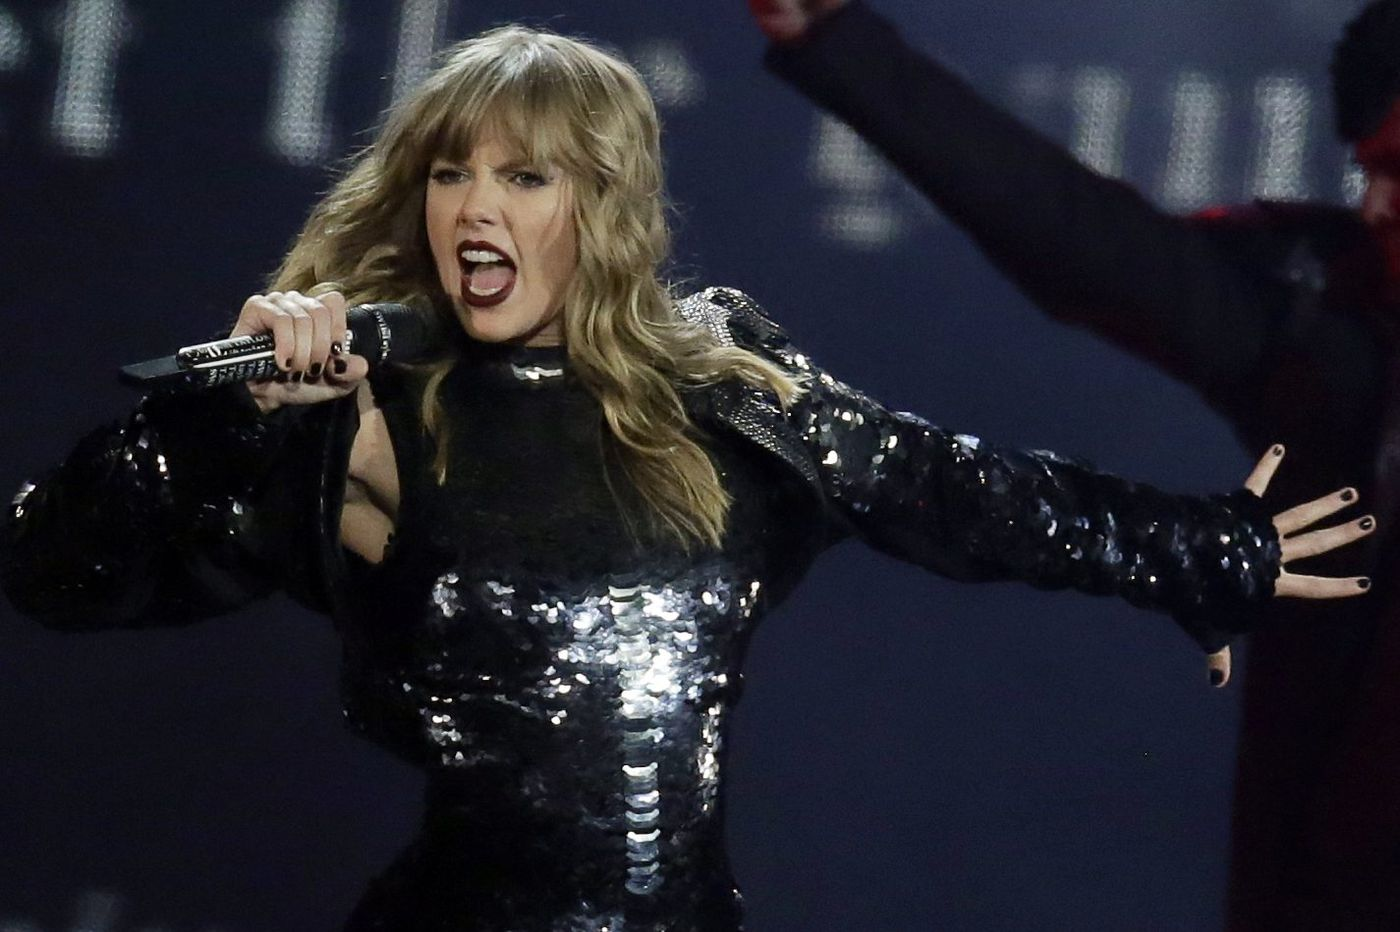 Summer concerts: U2, Lauryn Hill, Taylor Swift and more come to Philly